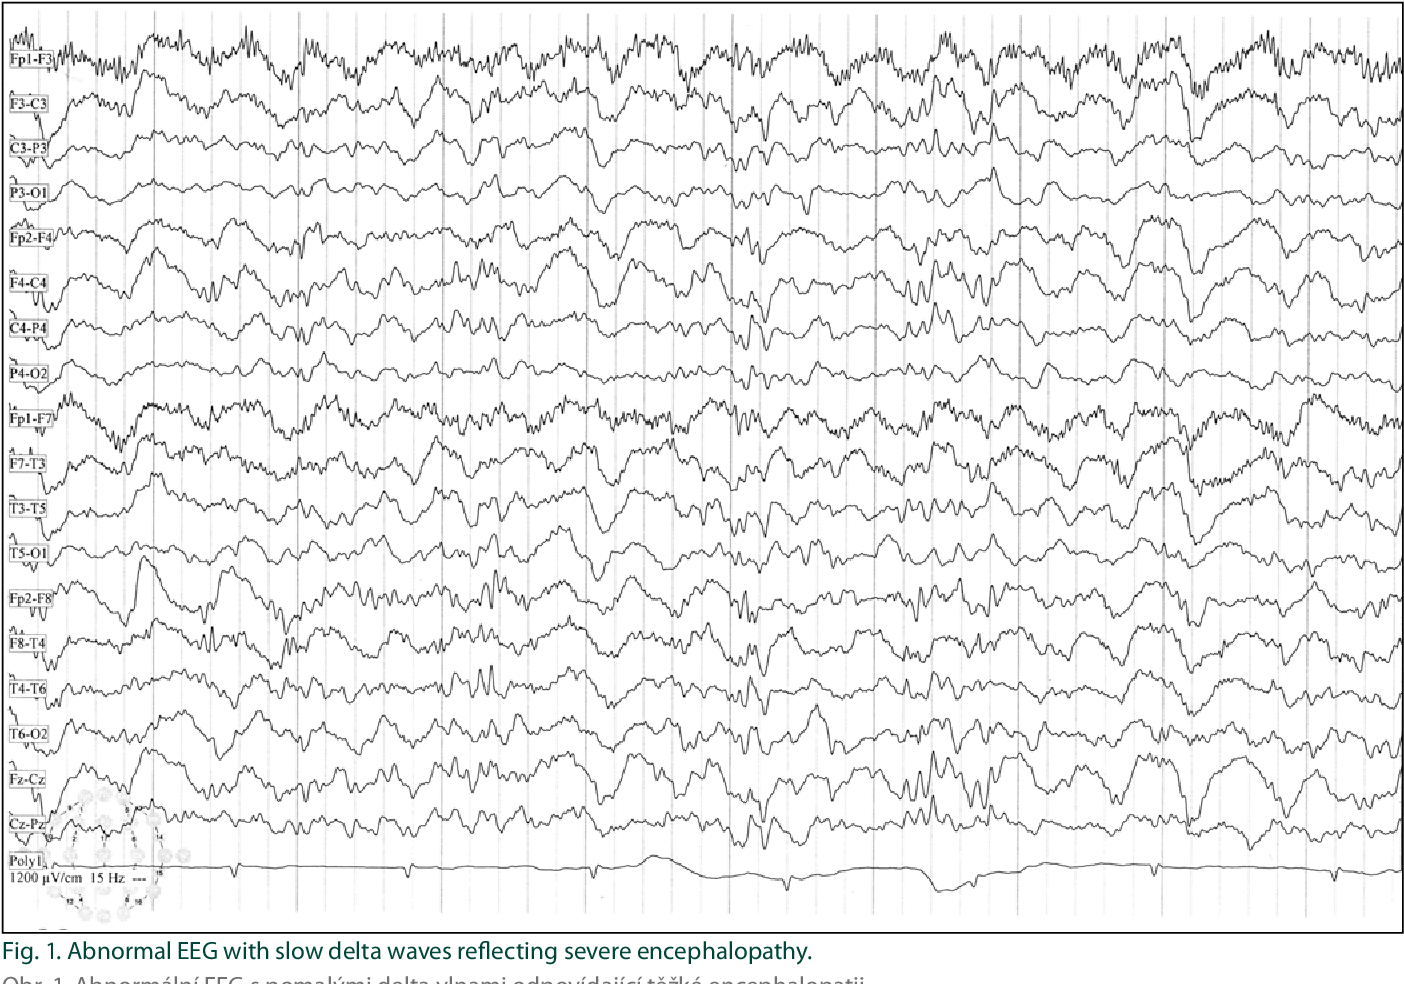 Baclofen and Clonazepam Overdose in a Patient with Chronic